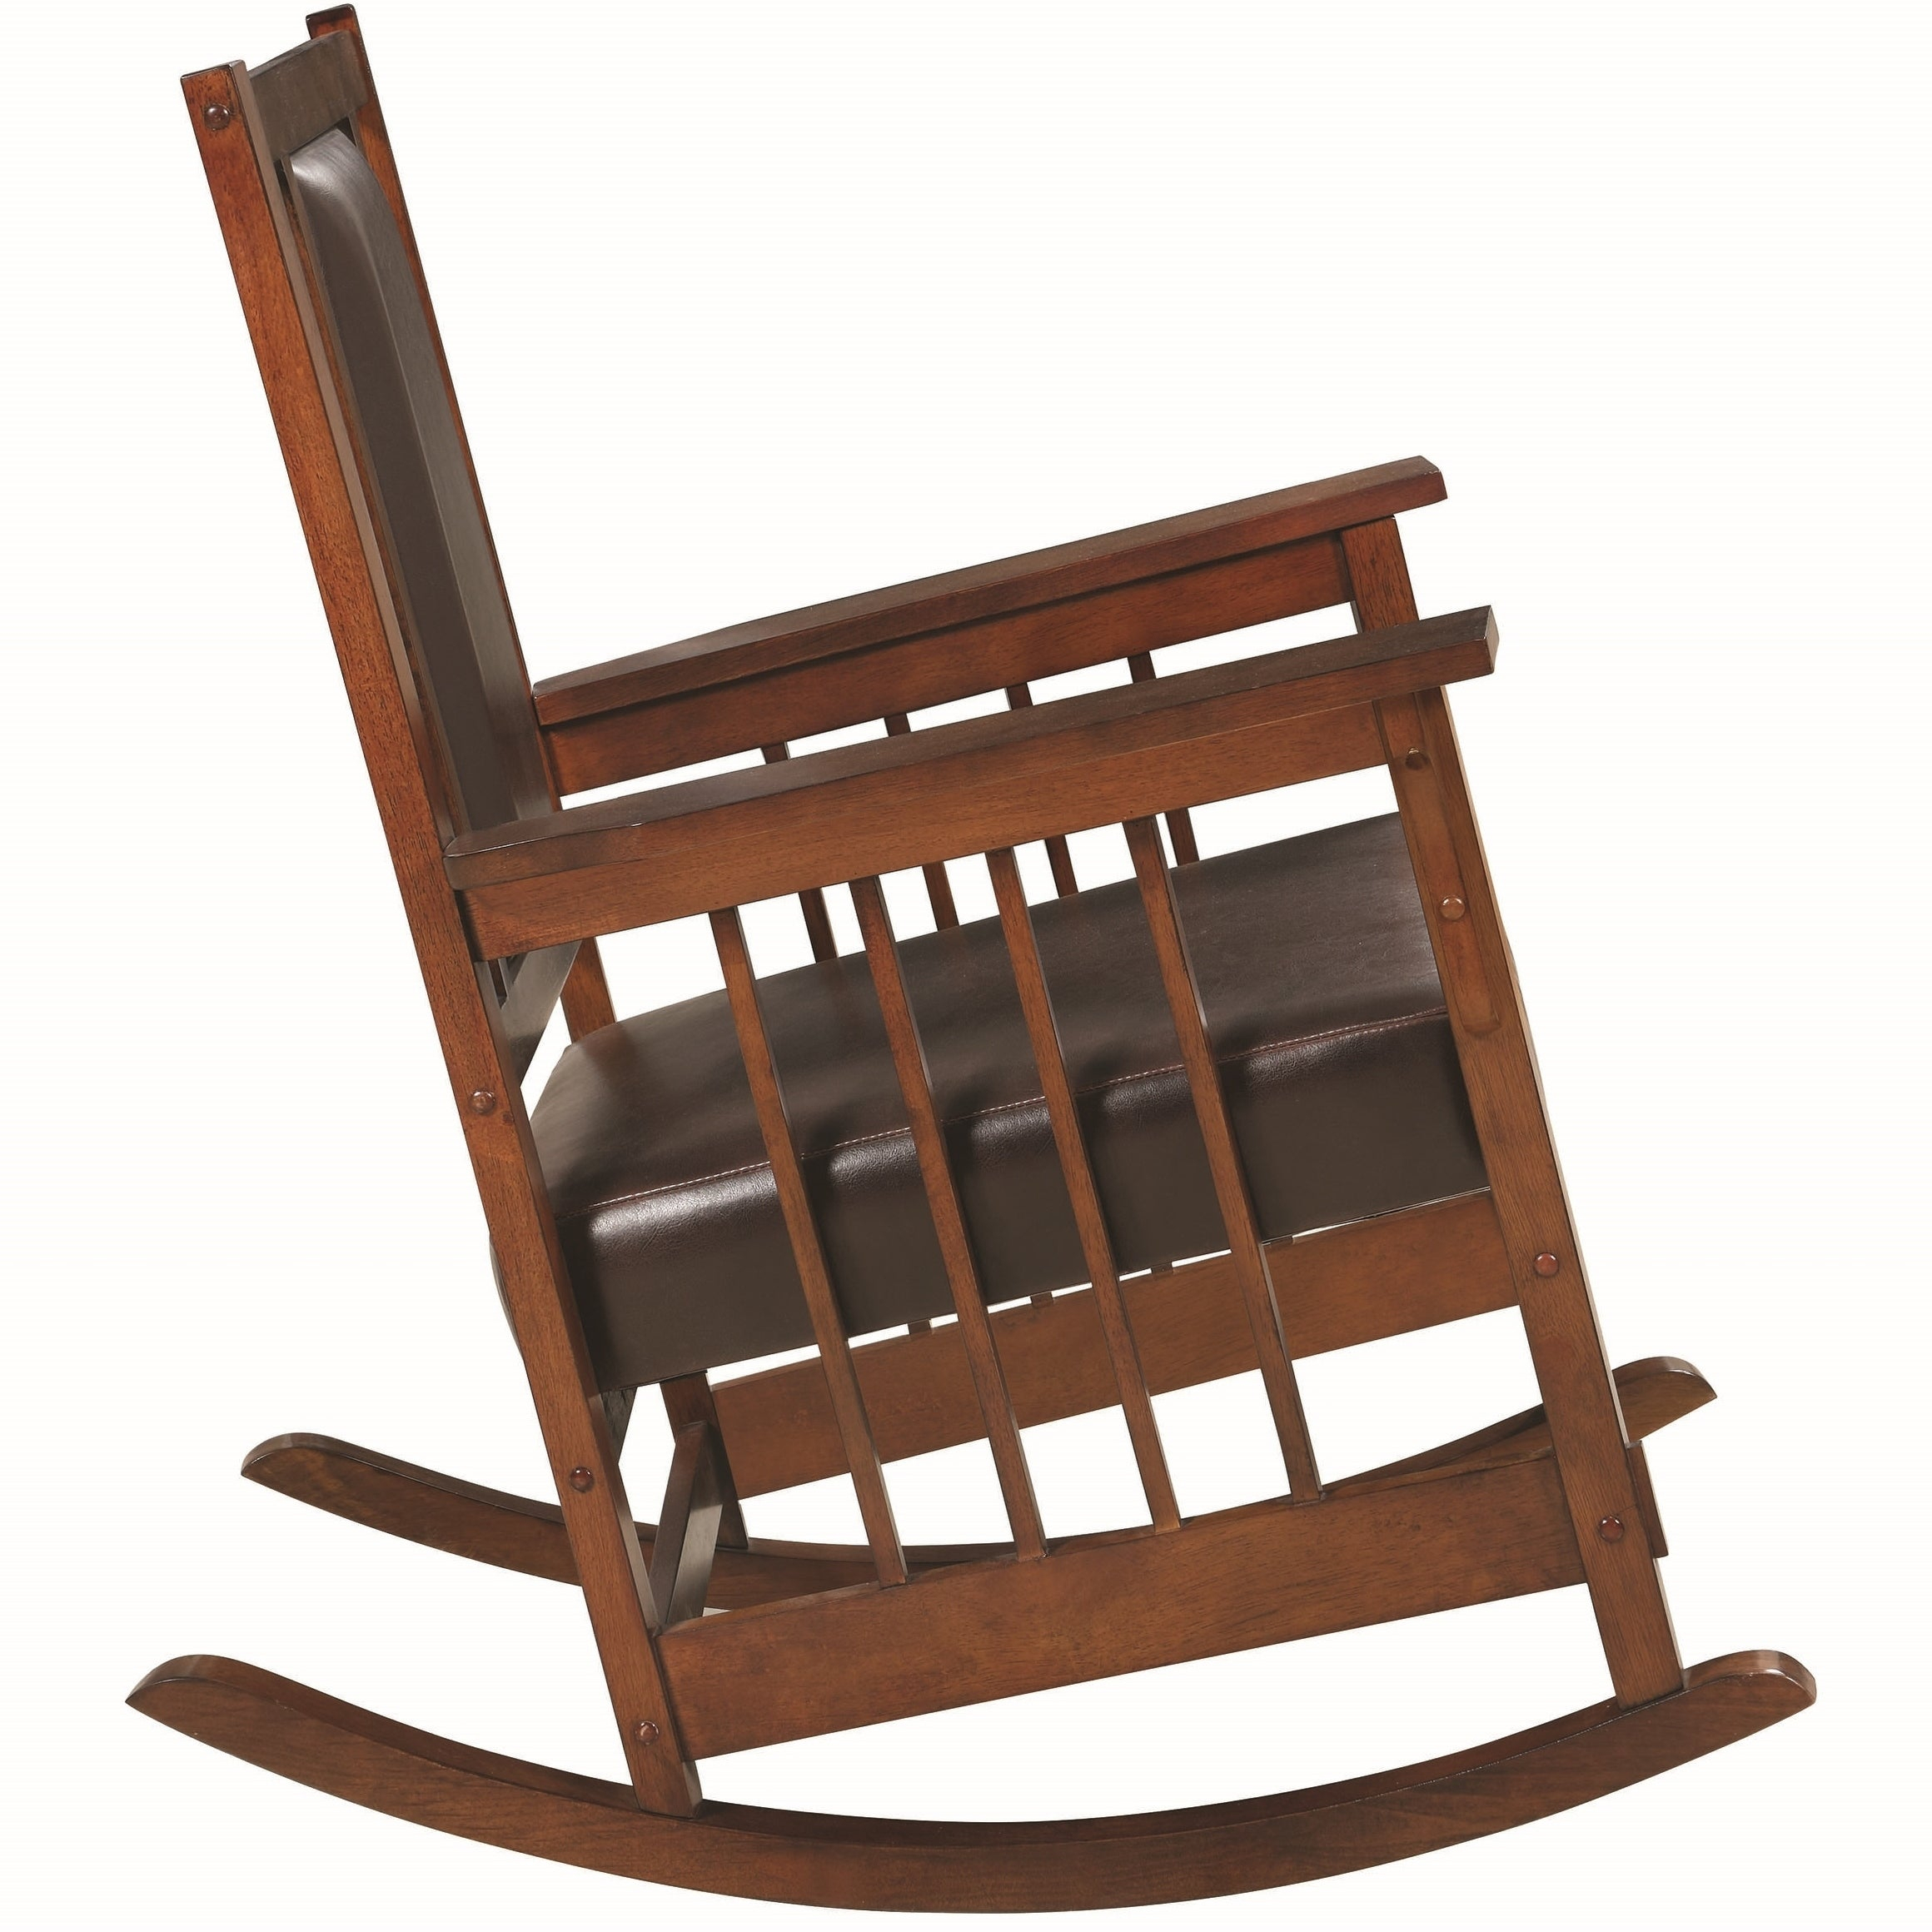 Inspiration about Mission Design Wood Rocking Chair With Brown Leather Seat Regarding Mission Design Wood Rocking Chairs With Brown Leather Seat (#3 of 20)